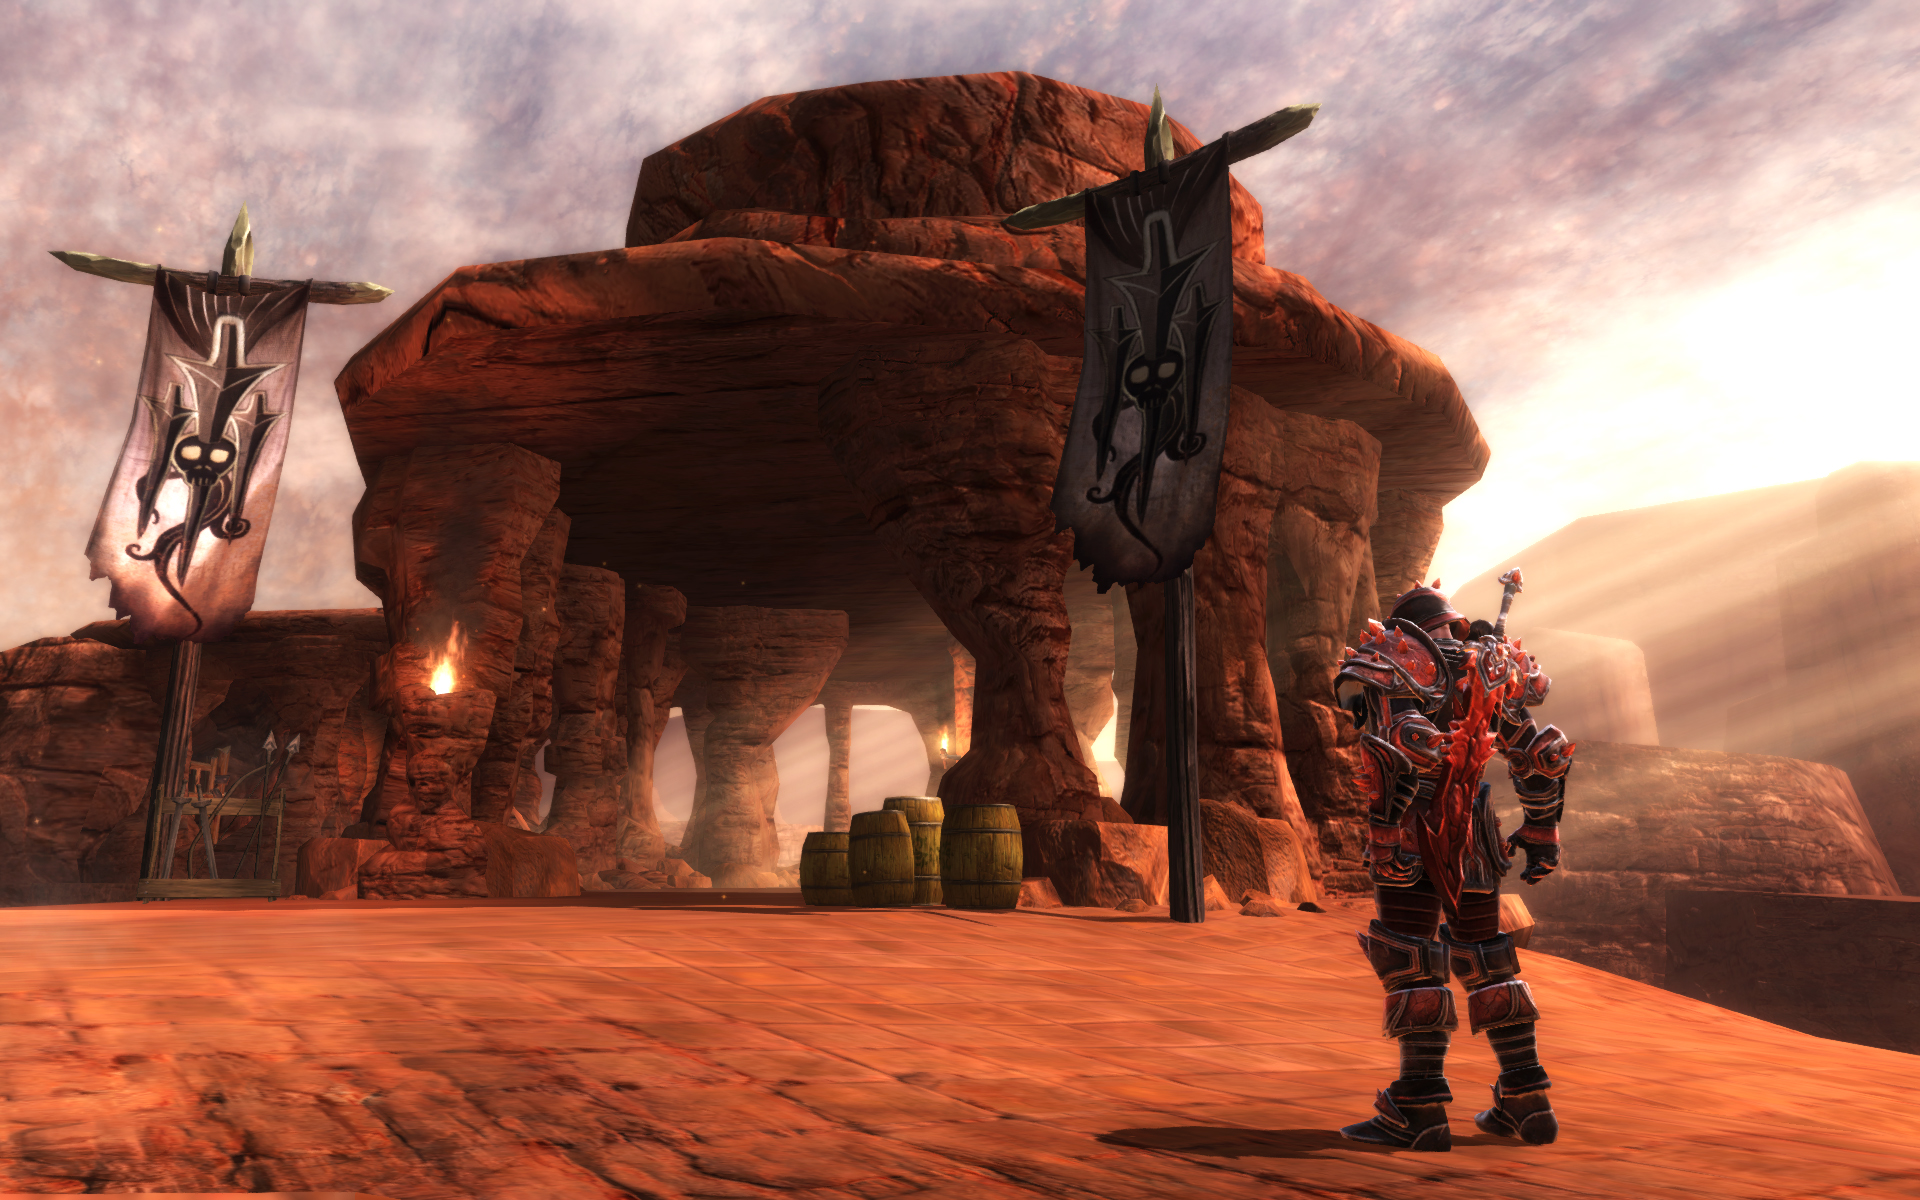 Kingdoms of Amalur Reckoning - House of Valor